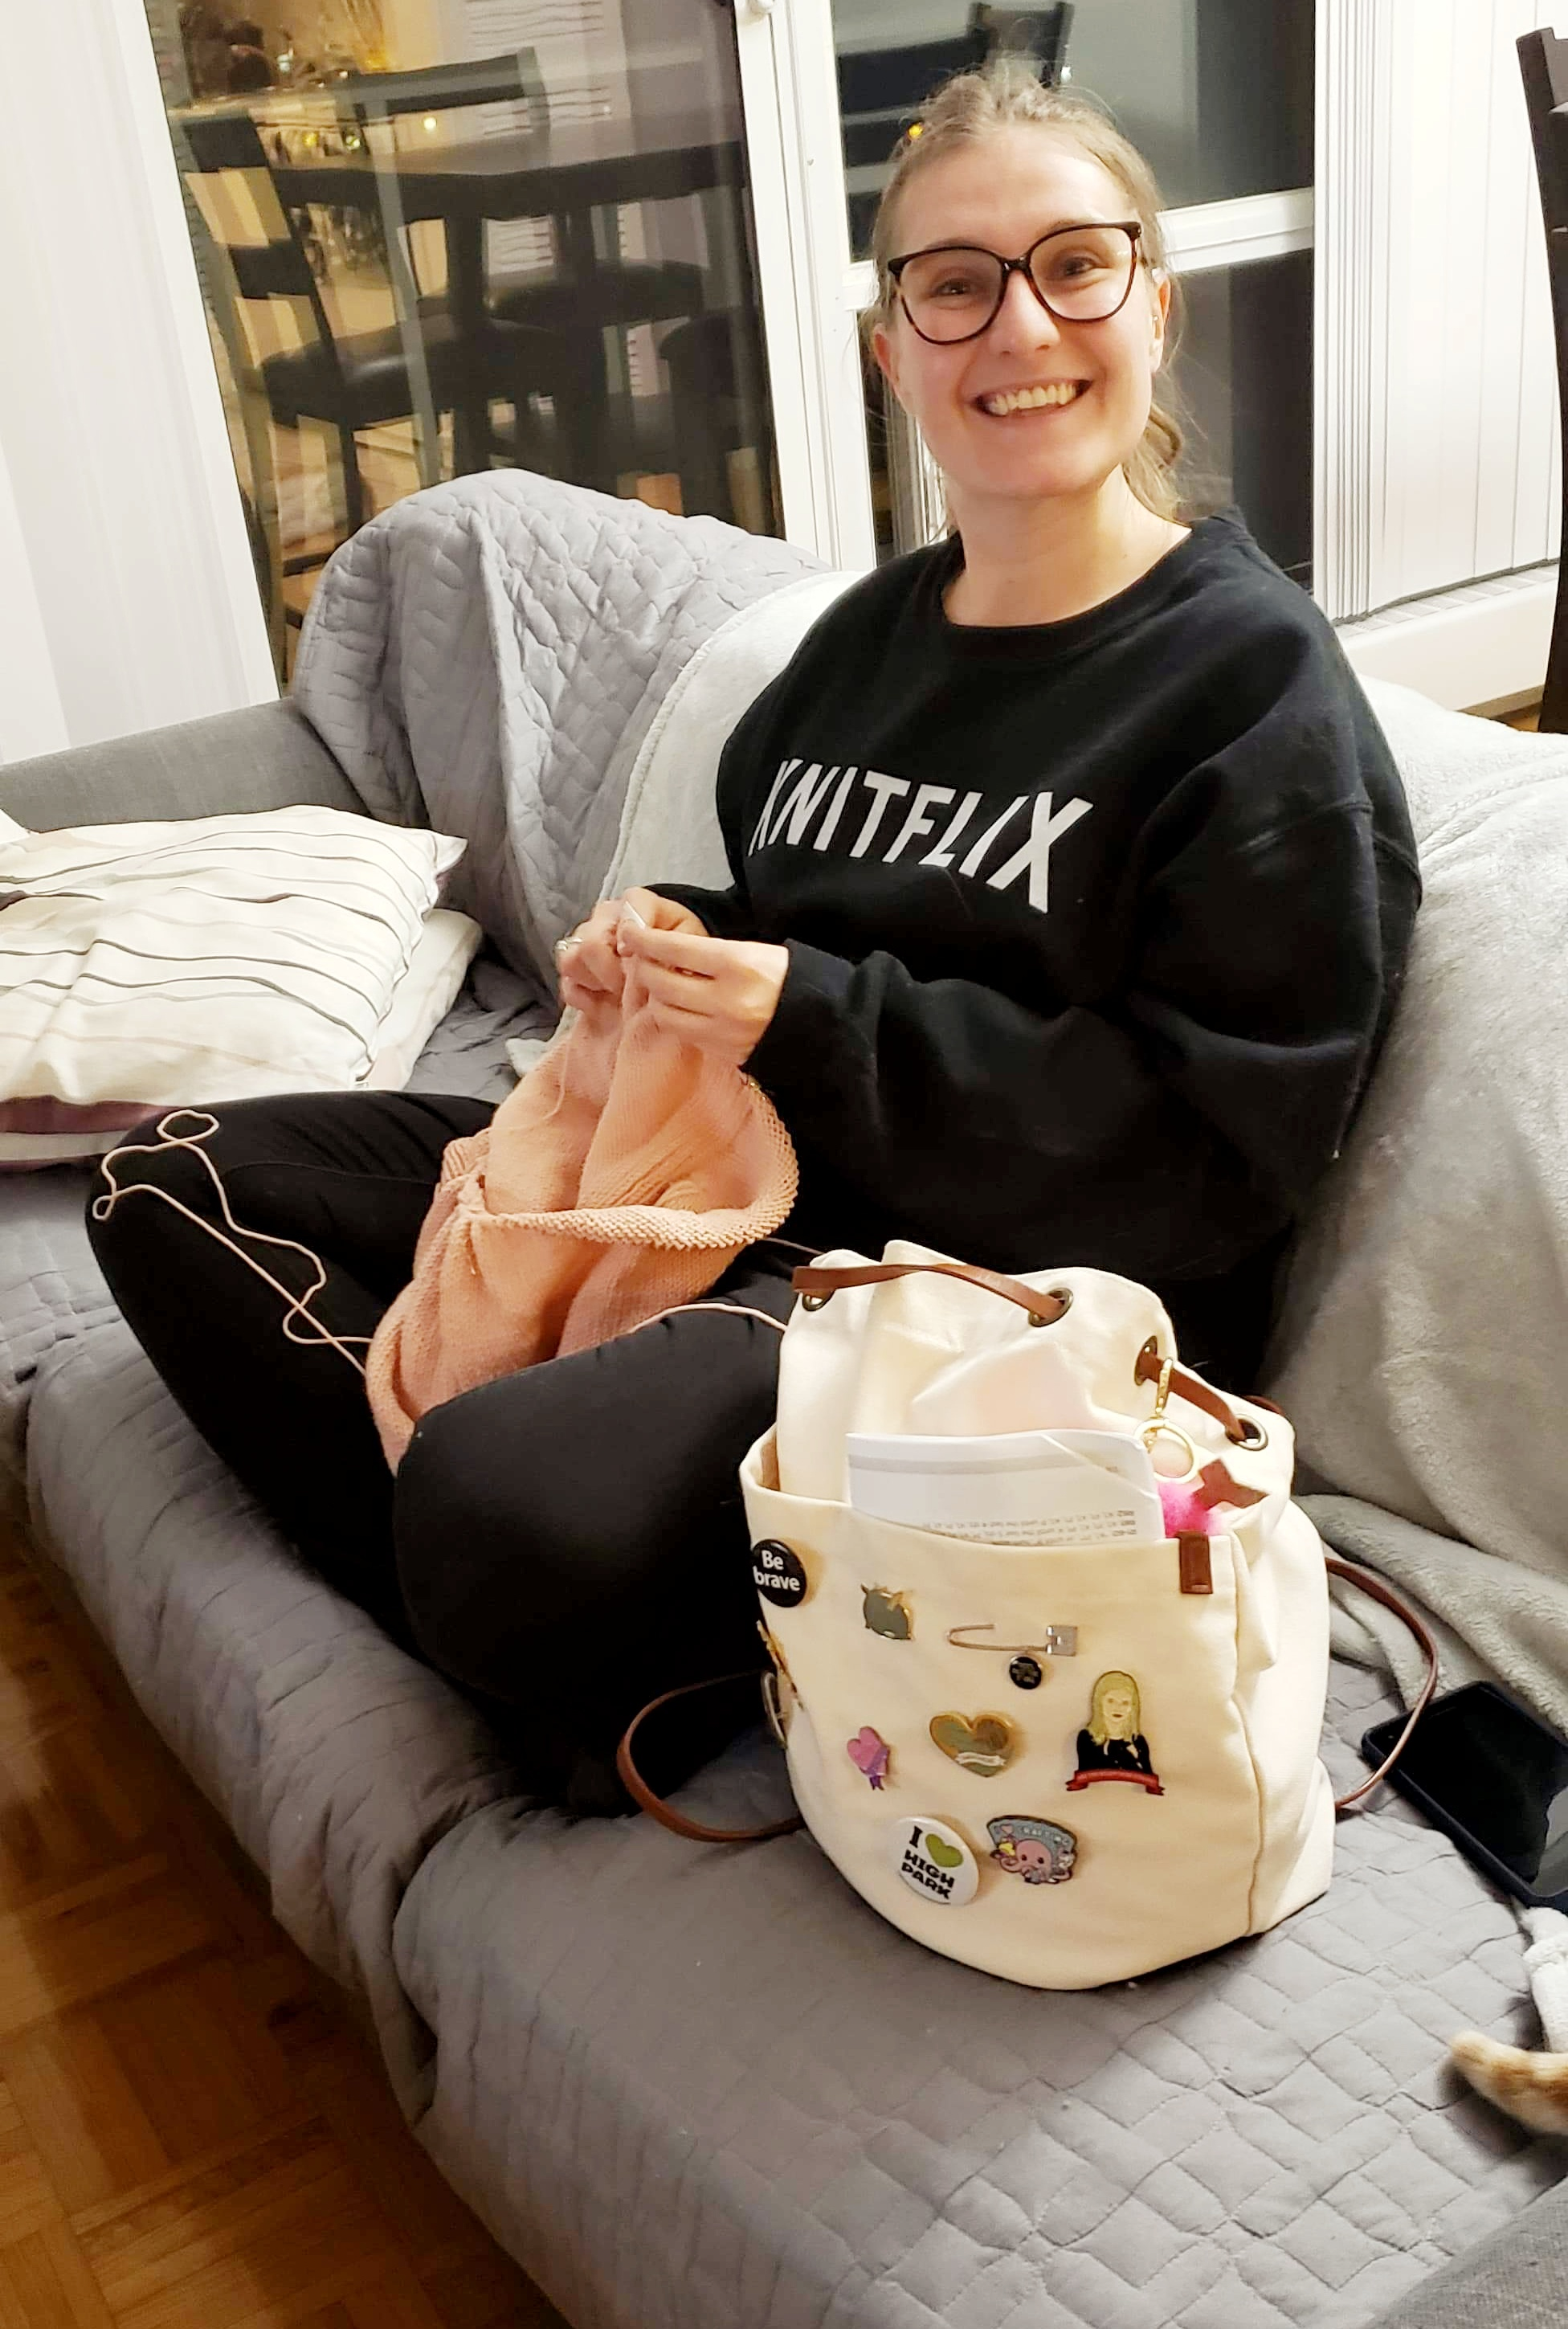 Young Caucasian woman sits on a grey couch knitting a pink sweater smiling at the camera